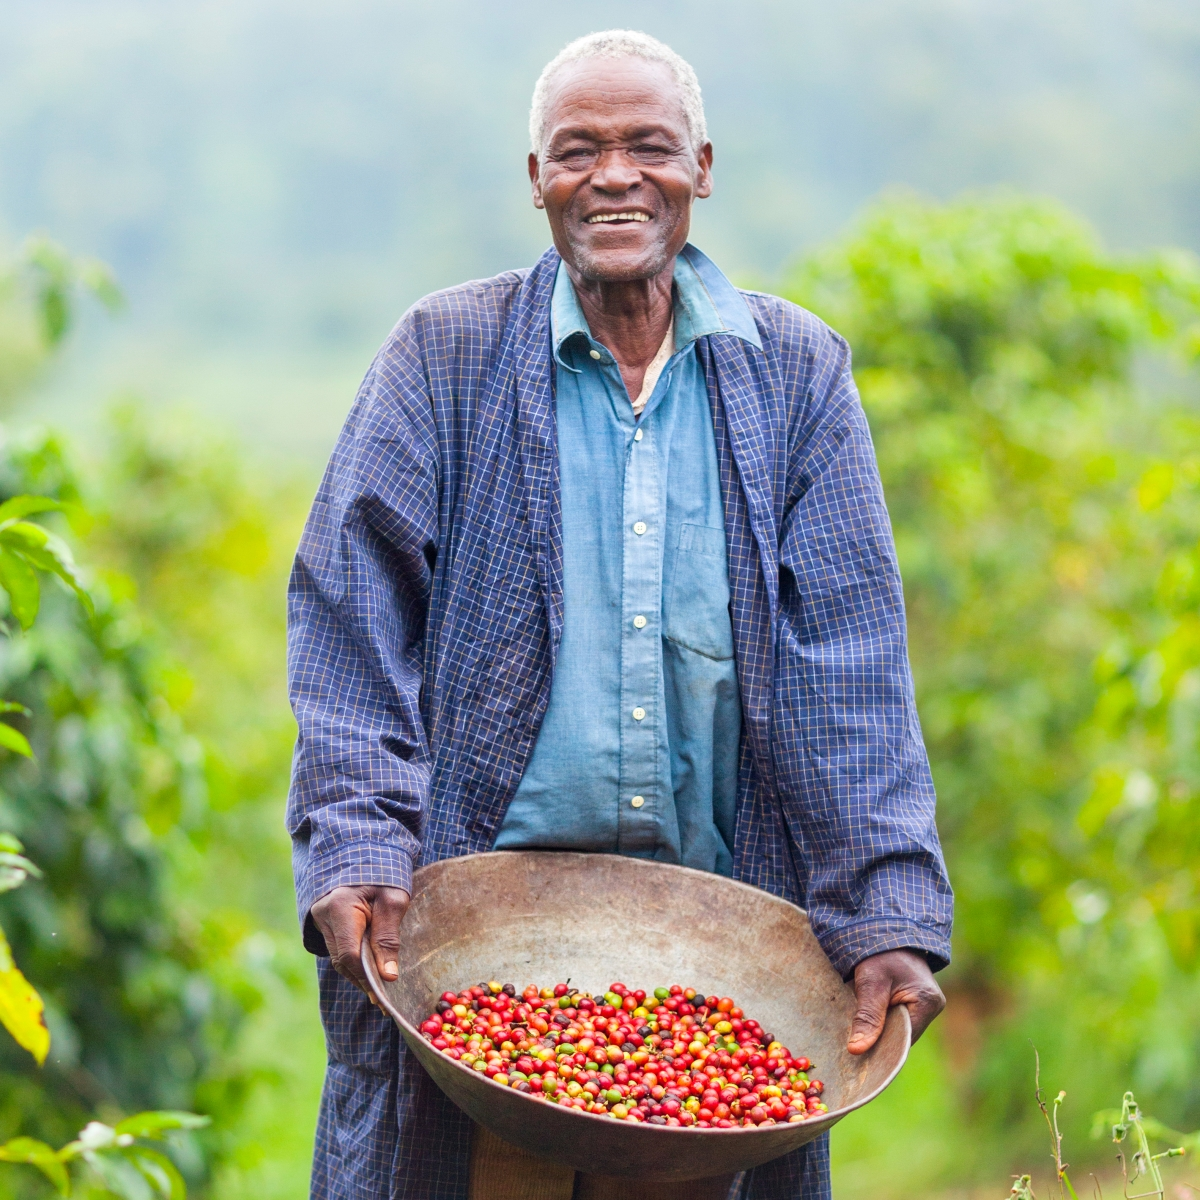 A Kenyan coffee farmer holding freshly harvested organic fair trade coffee cherries from the coffee plant.